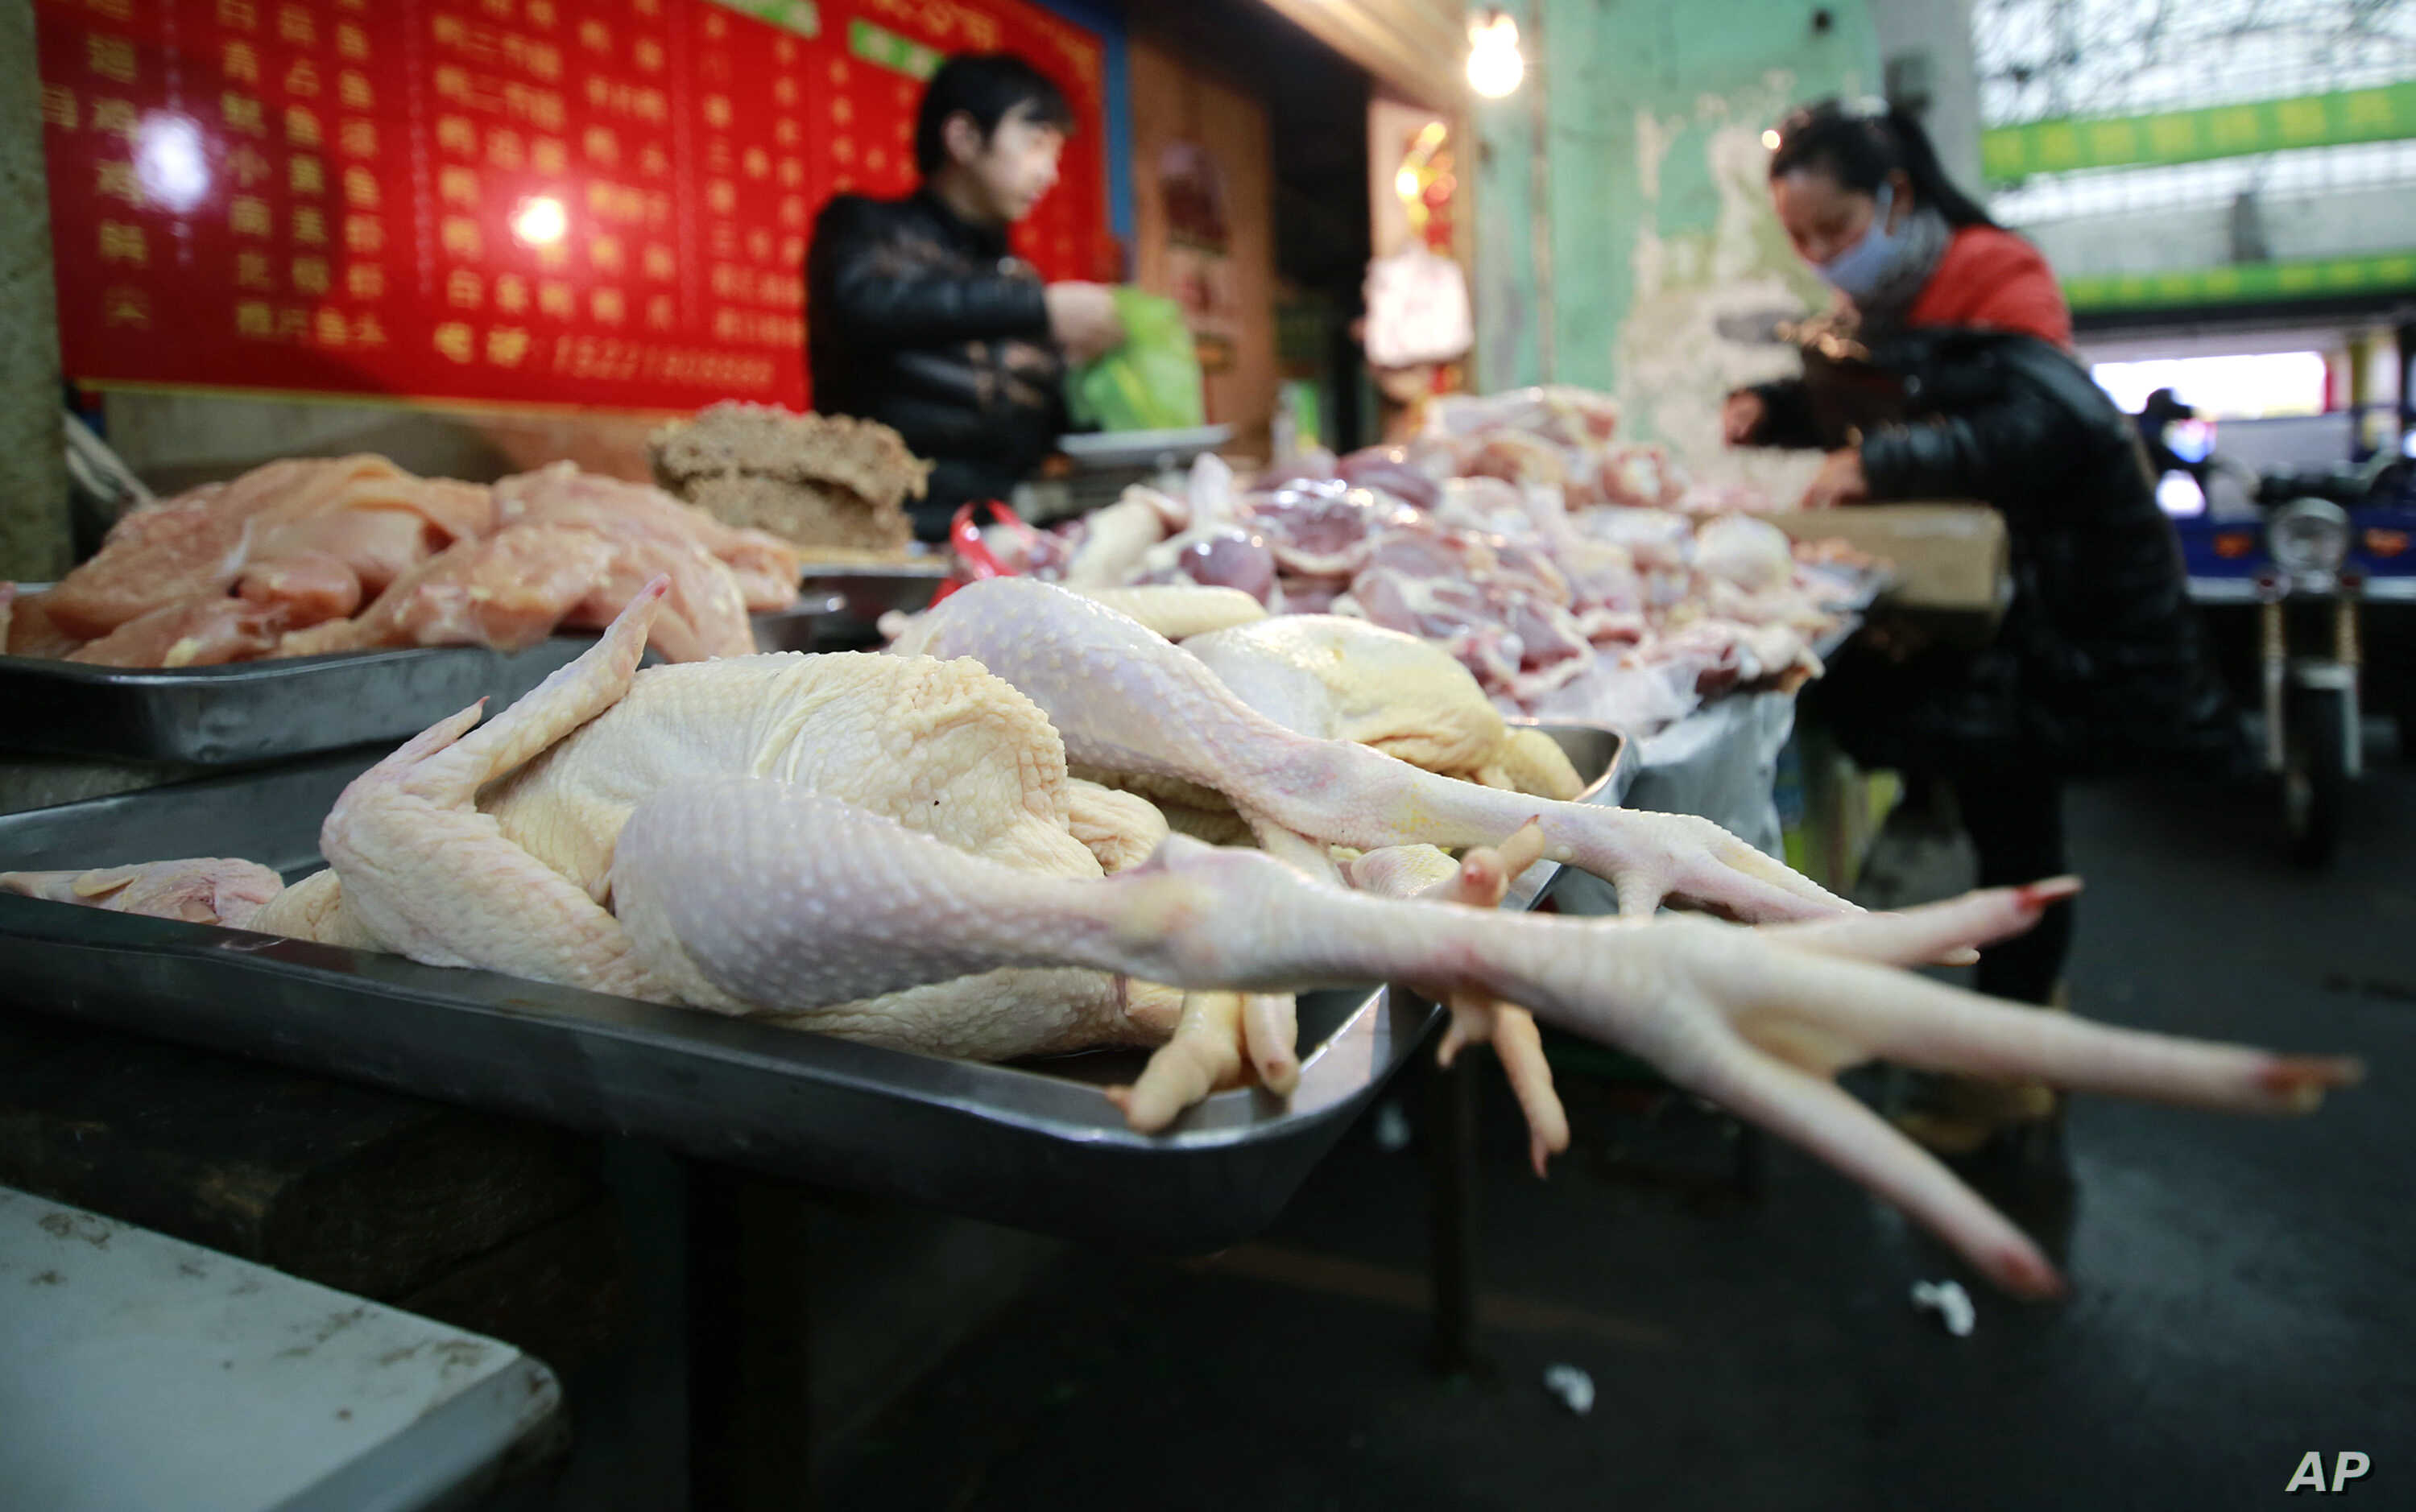 In a worrisome sign, a bird flu in China appears to have mutated so that it can spread to other animals, raising the potential for a bigger threat to people, scientists said, Apr. 4, 2013.